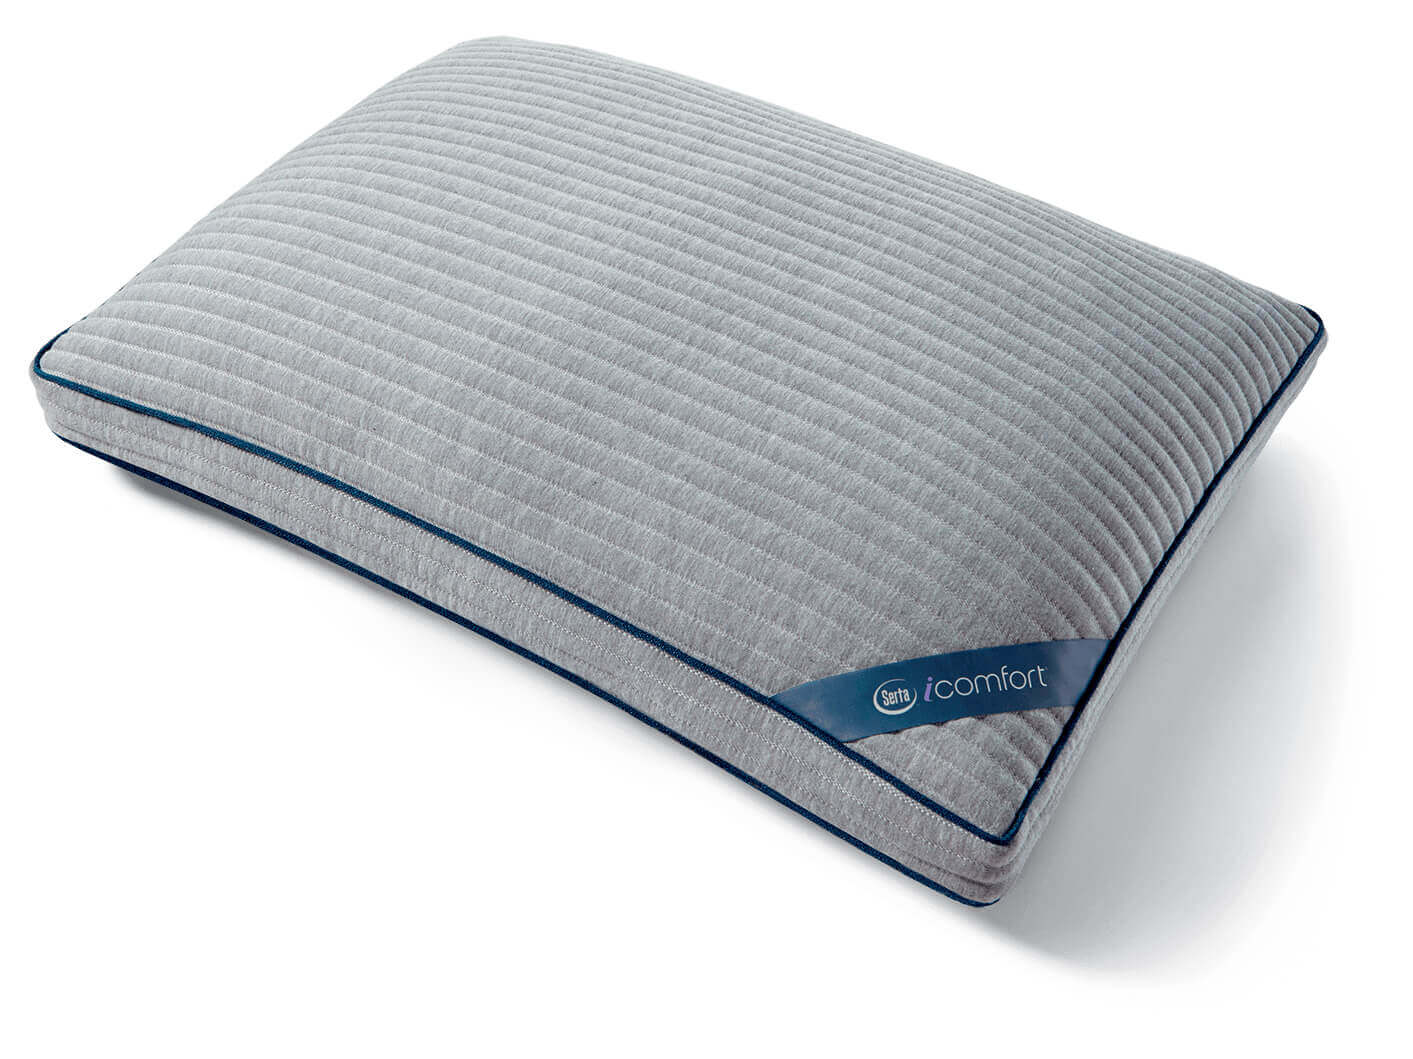 Serta iComfort Scrunch 4.0 Pillow - MJM Furniture